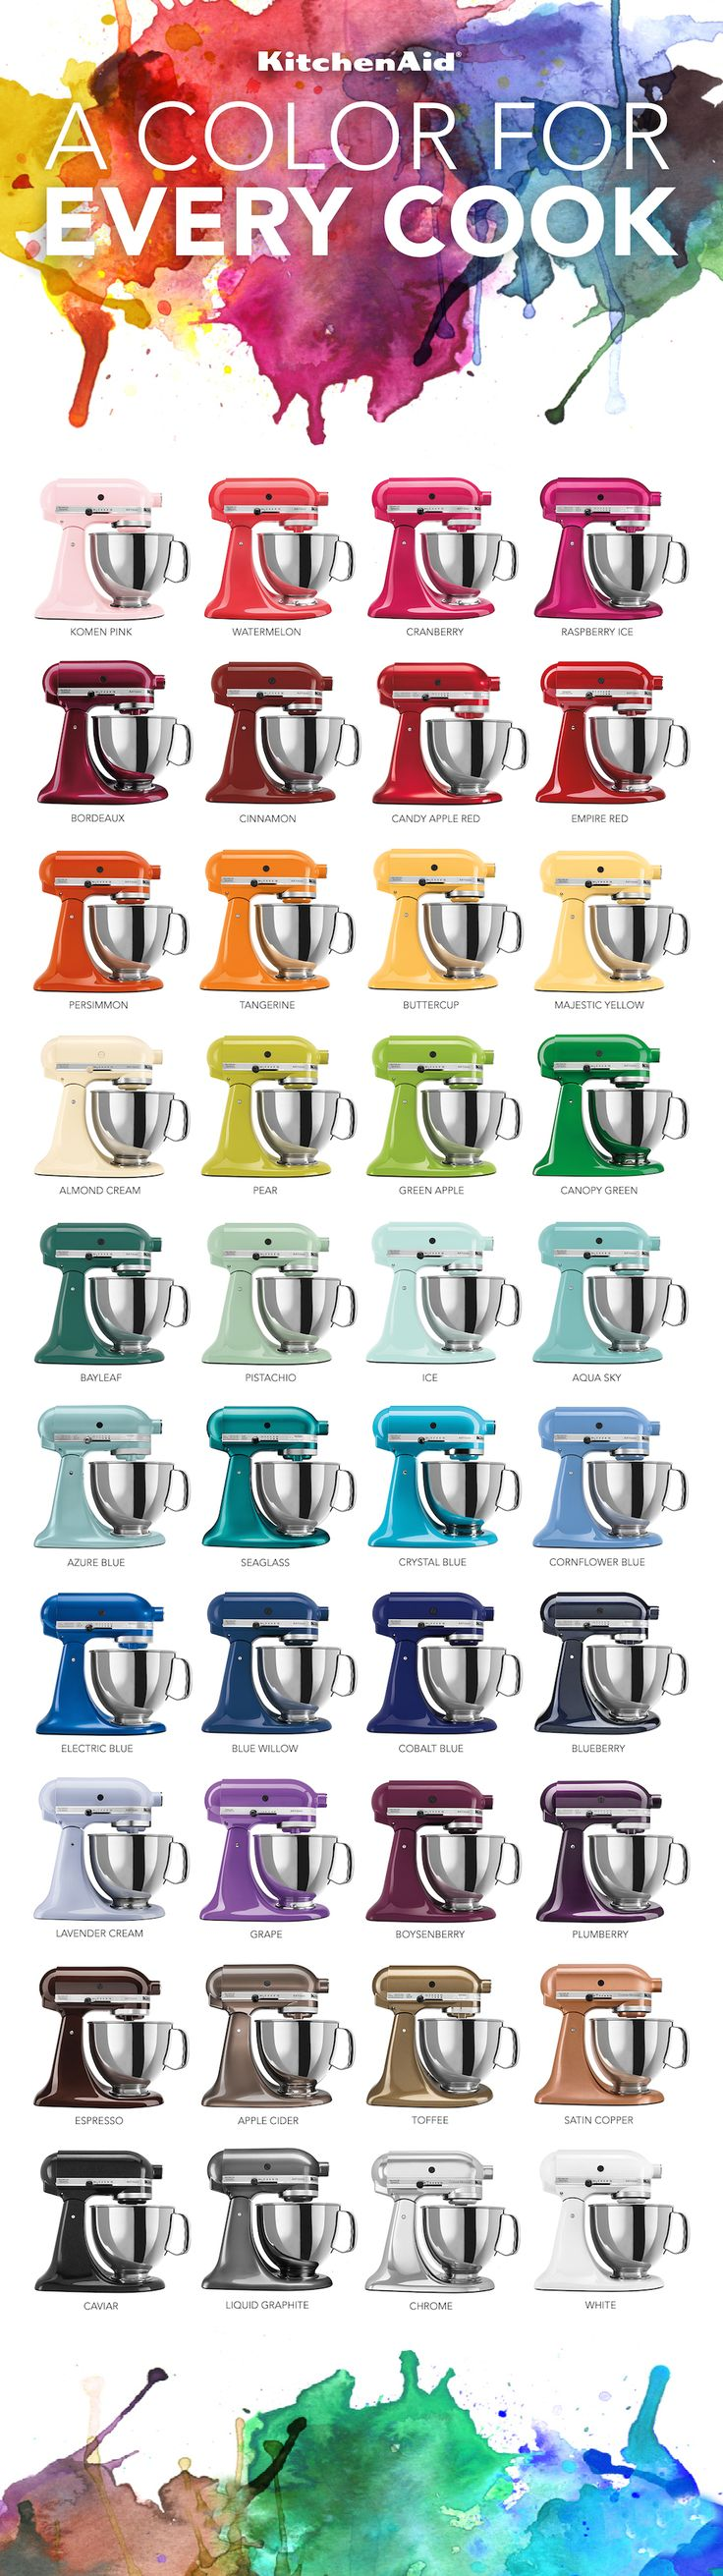 Ki Ki Kitchenaid Mixer Colors - Kitchenaid stand mixers infographic kitchenaid i want any one of the following colors